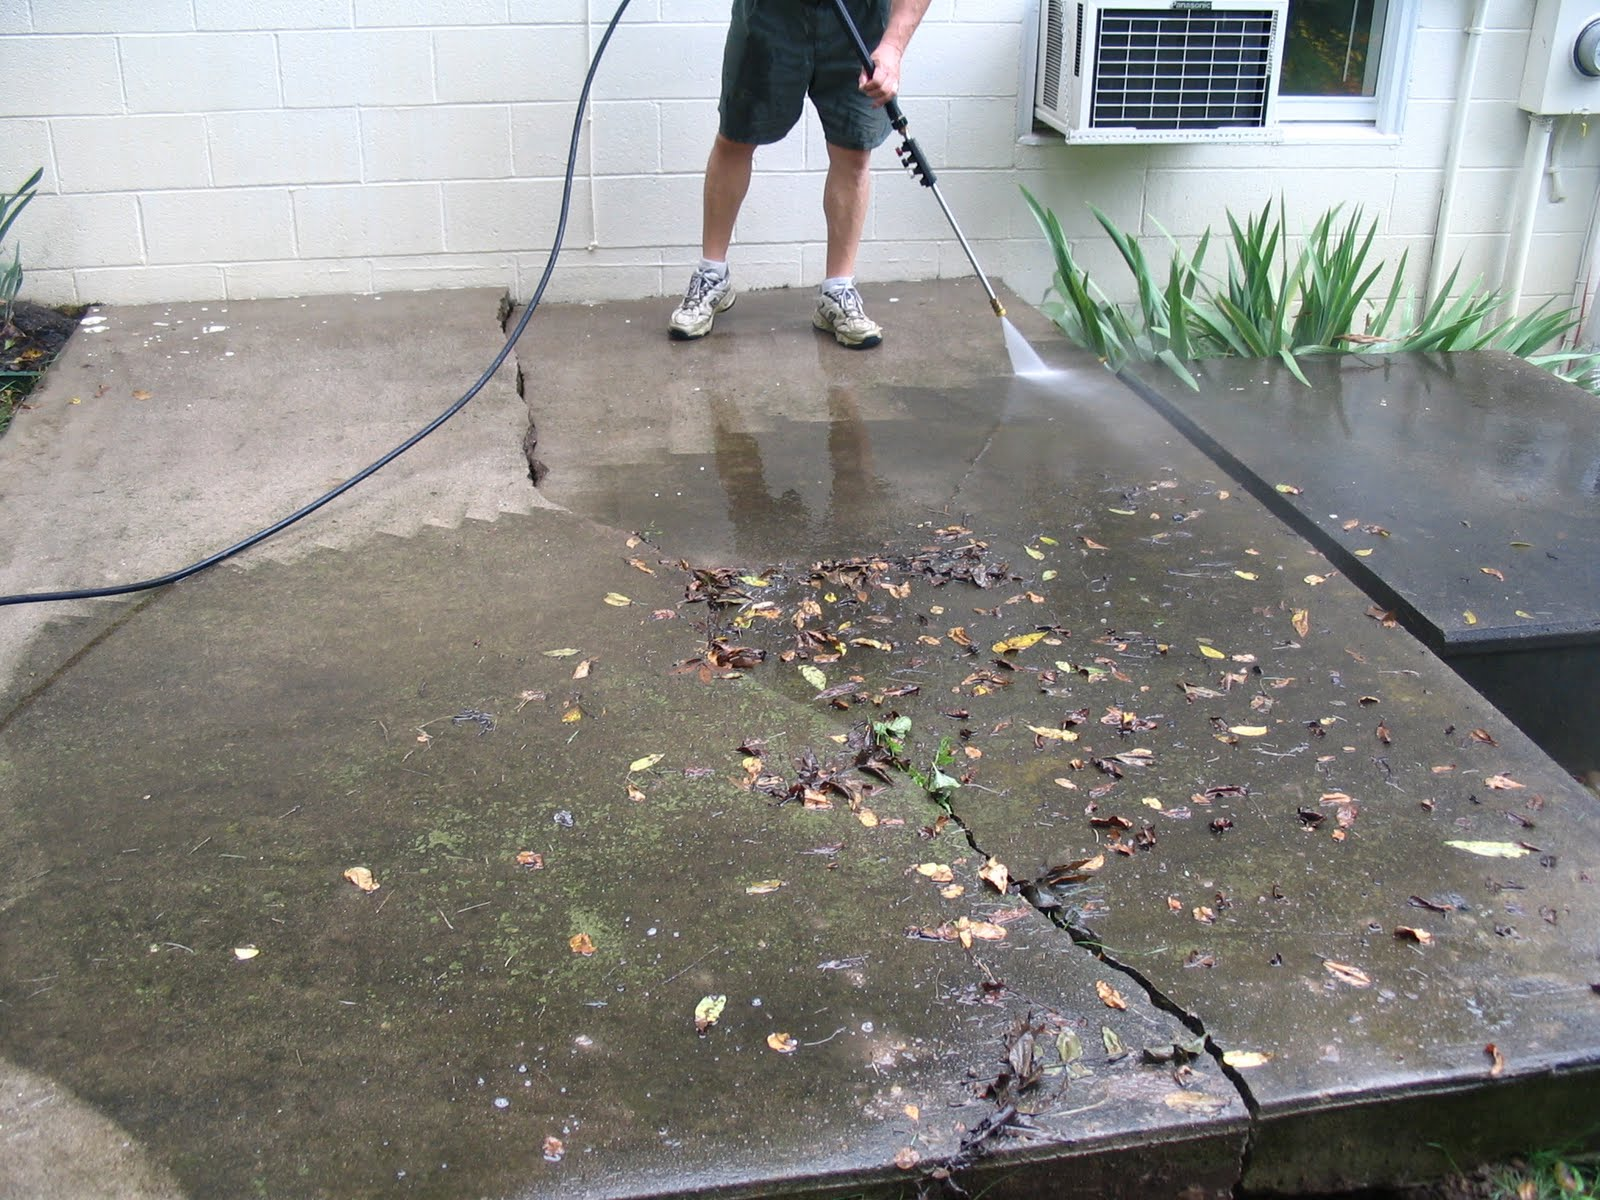 My Shabby Chateau: How to Turn an Ugly Concrete Slab into ...